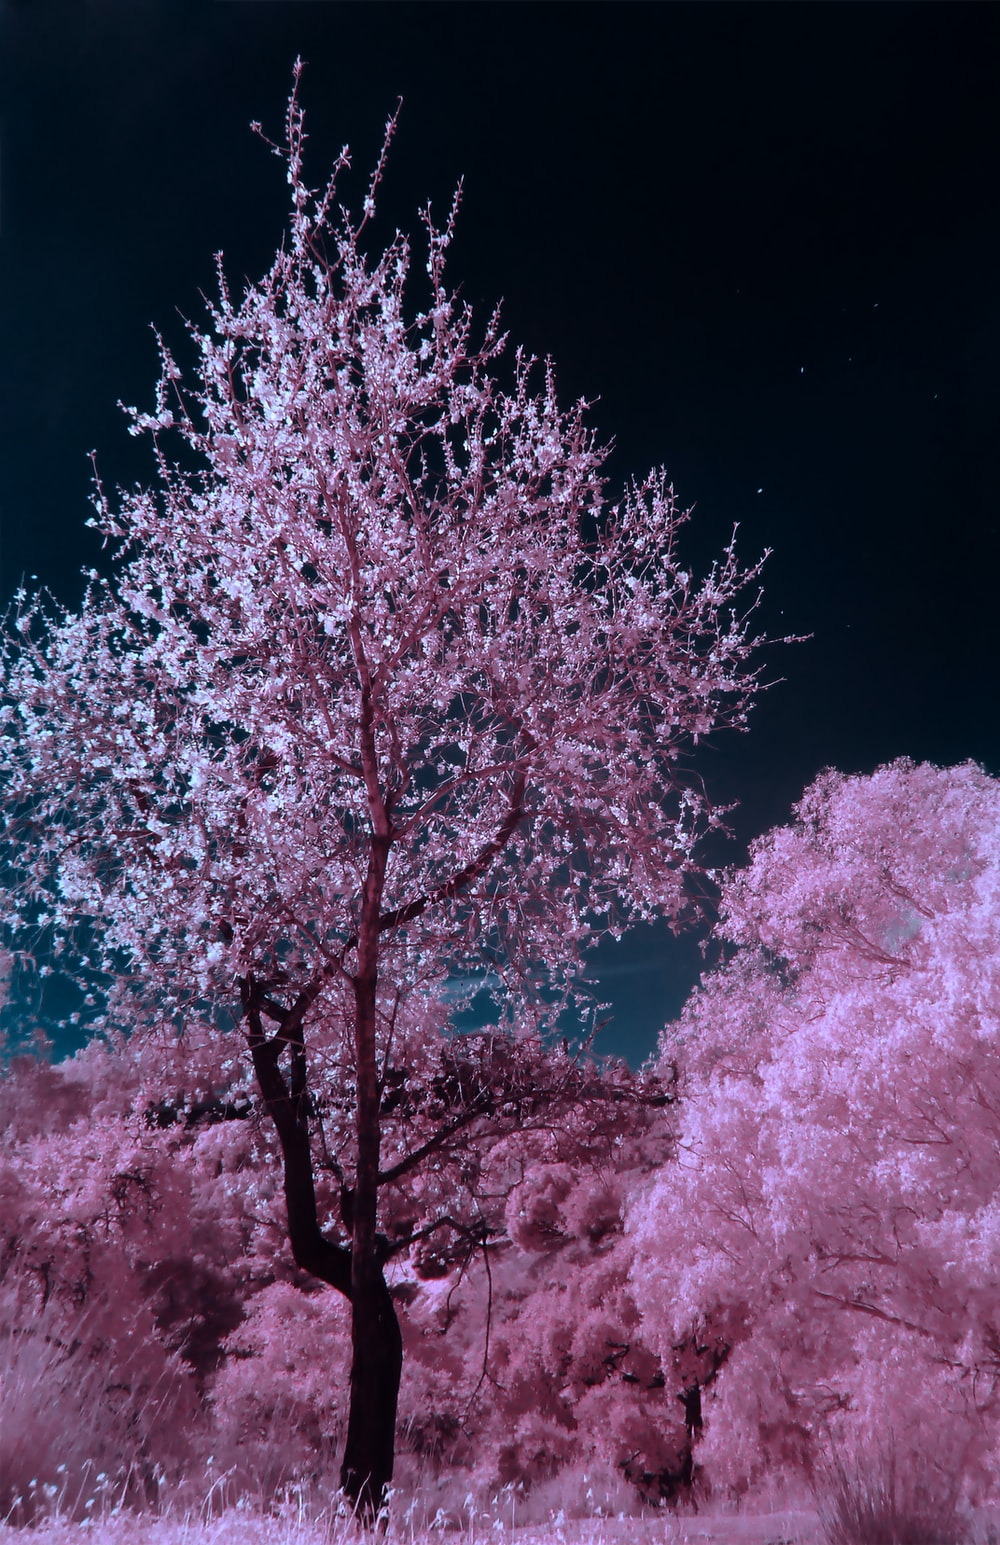 pink and brown cherry blossom tree during nighttime